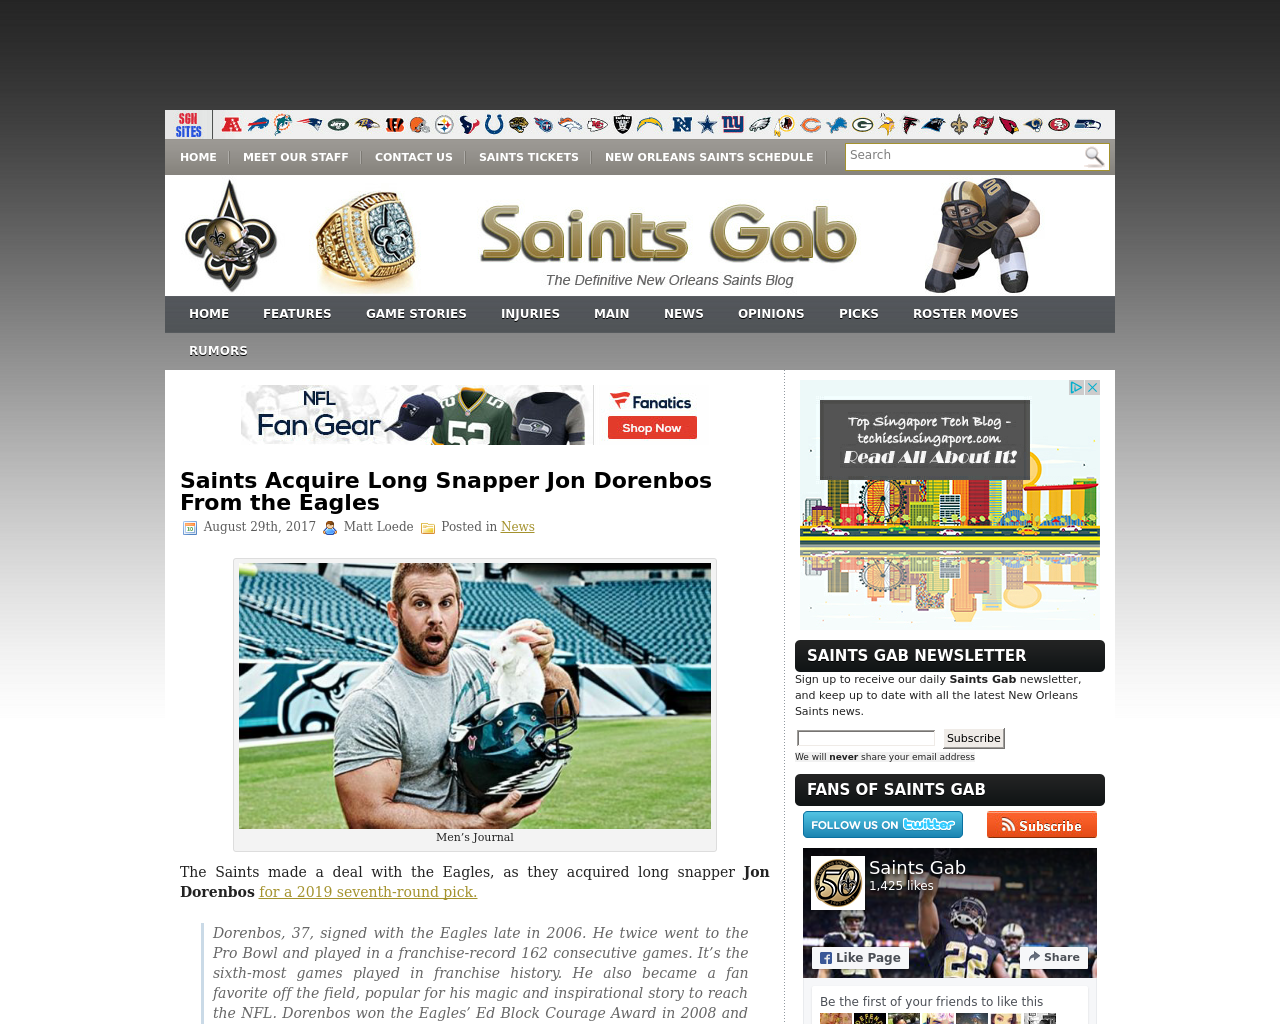 Saints-Gab-Advertising-Reviews-Pricing